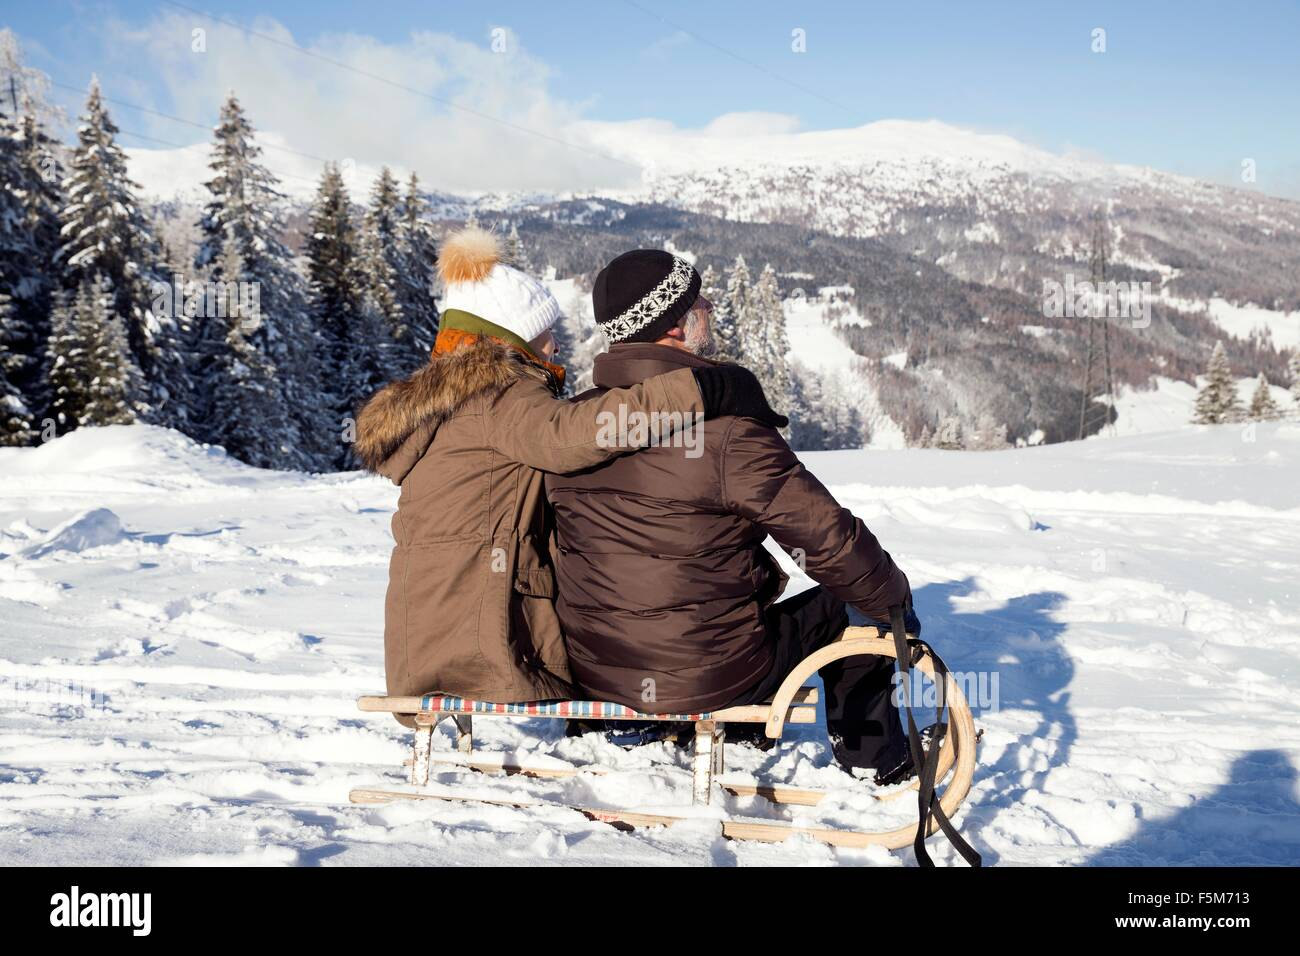 Snow capped mountains and rear view of senior couple sitting on sledge looking away, Sattelbergalm, Tyrol, Austria - Stock Image